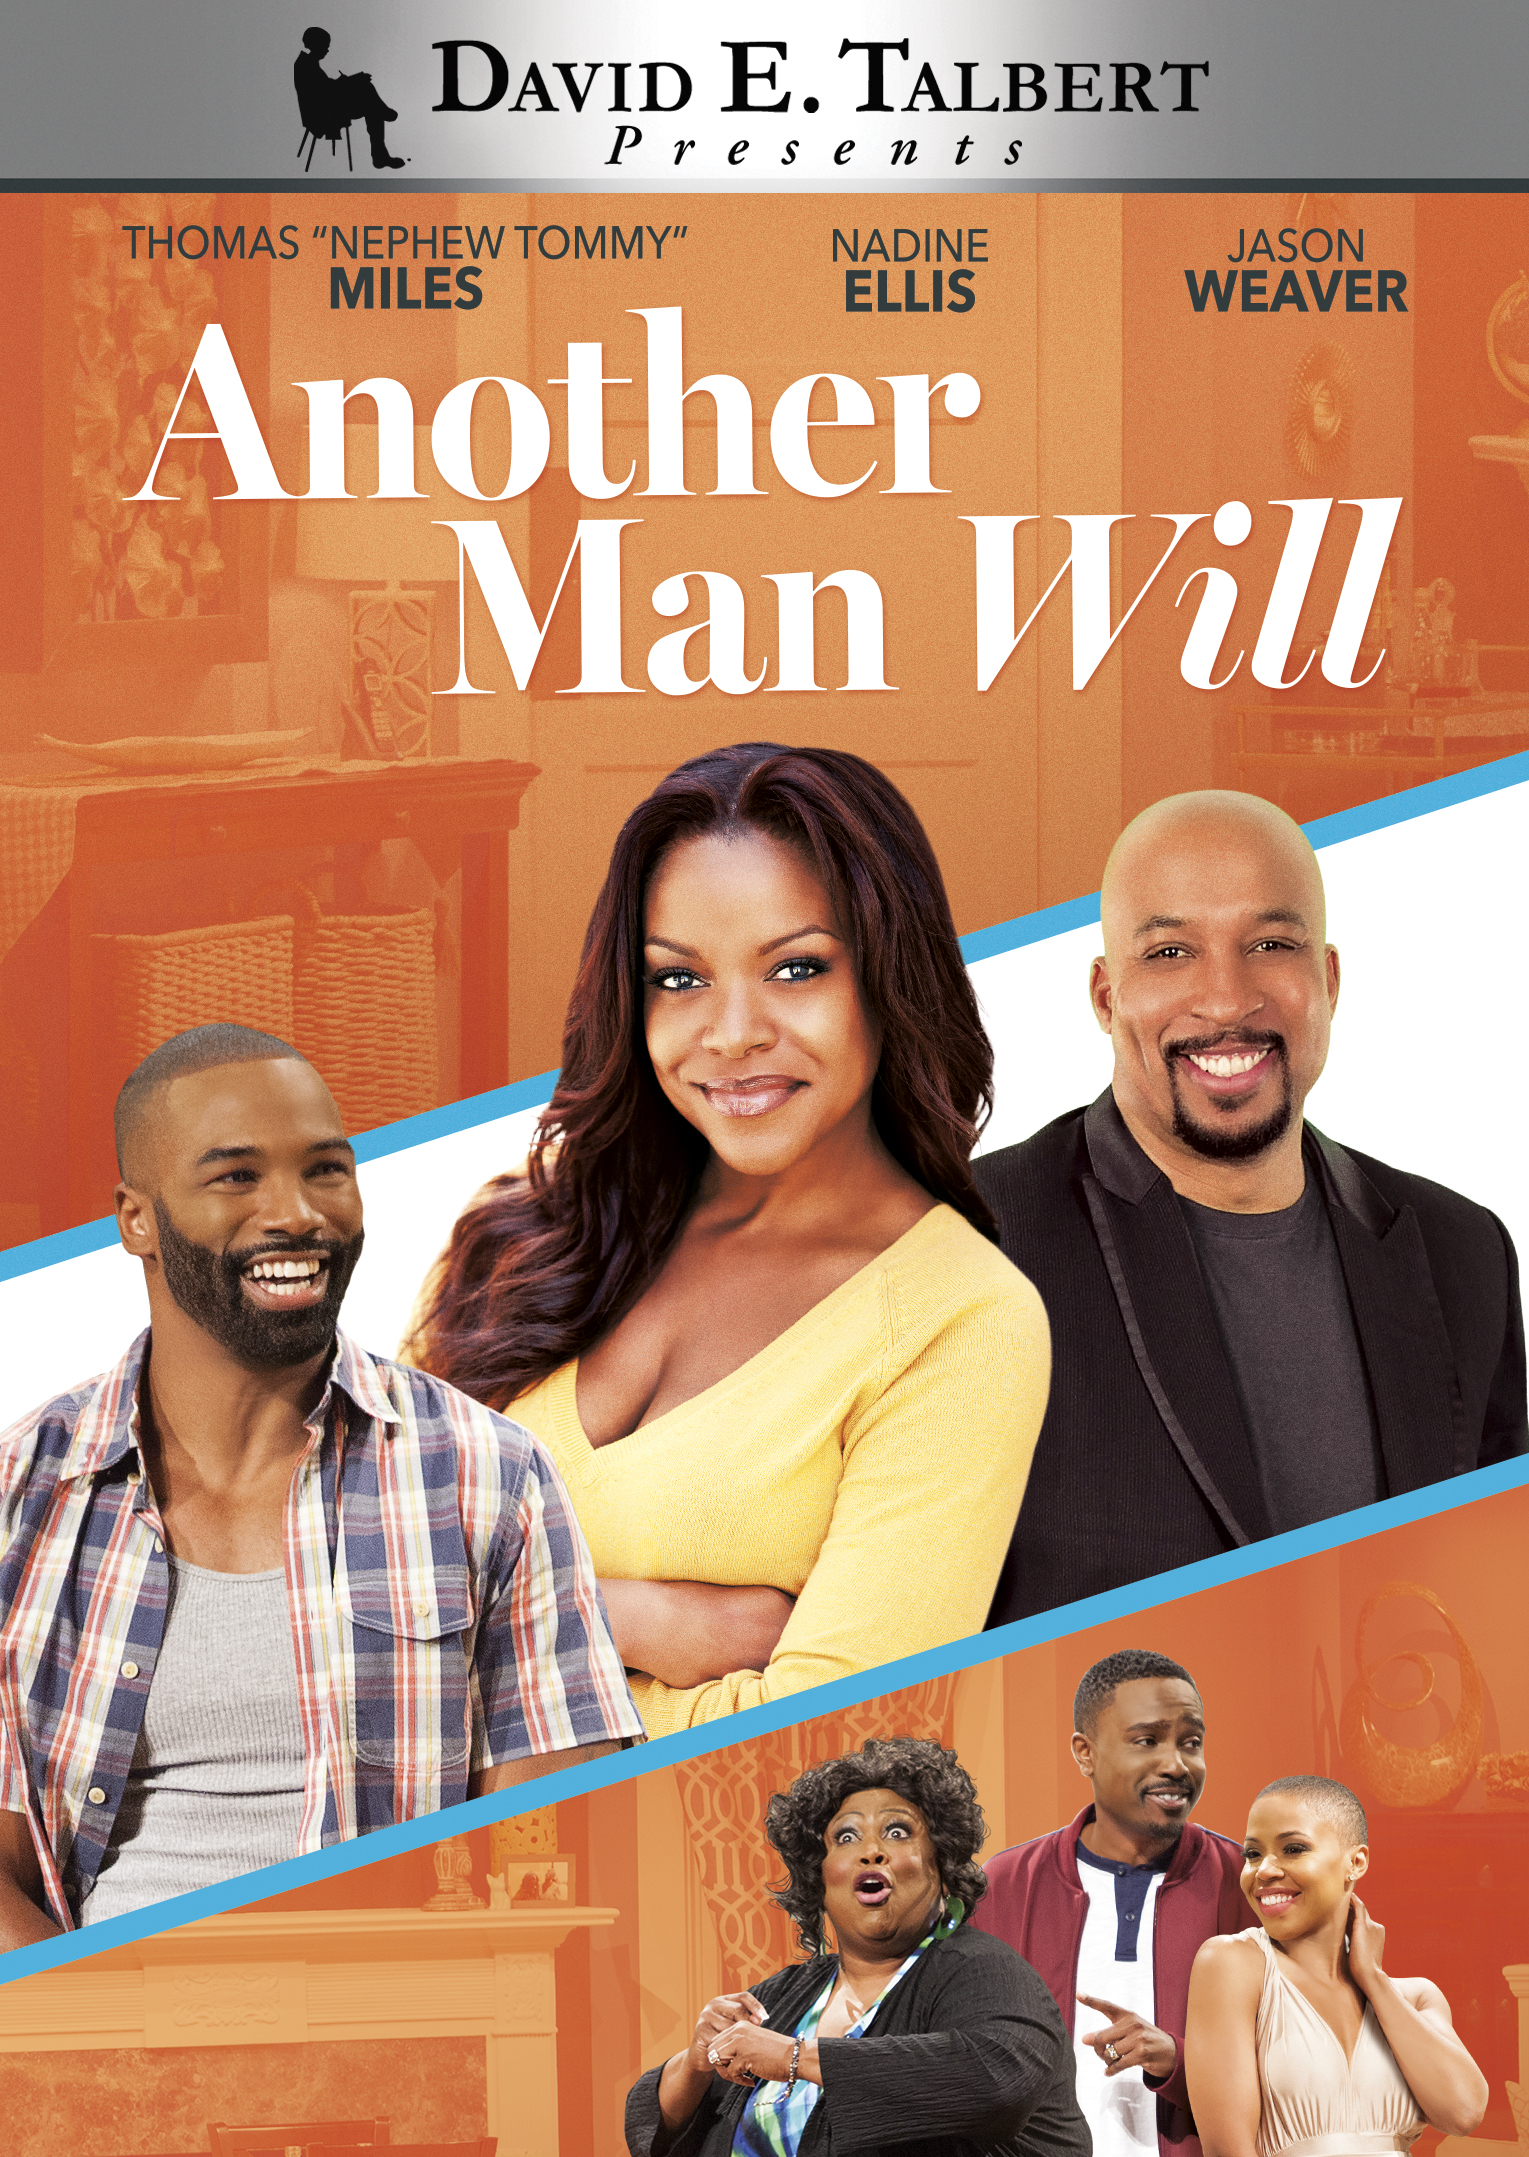 amw_another_man_will_keyart